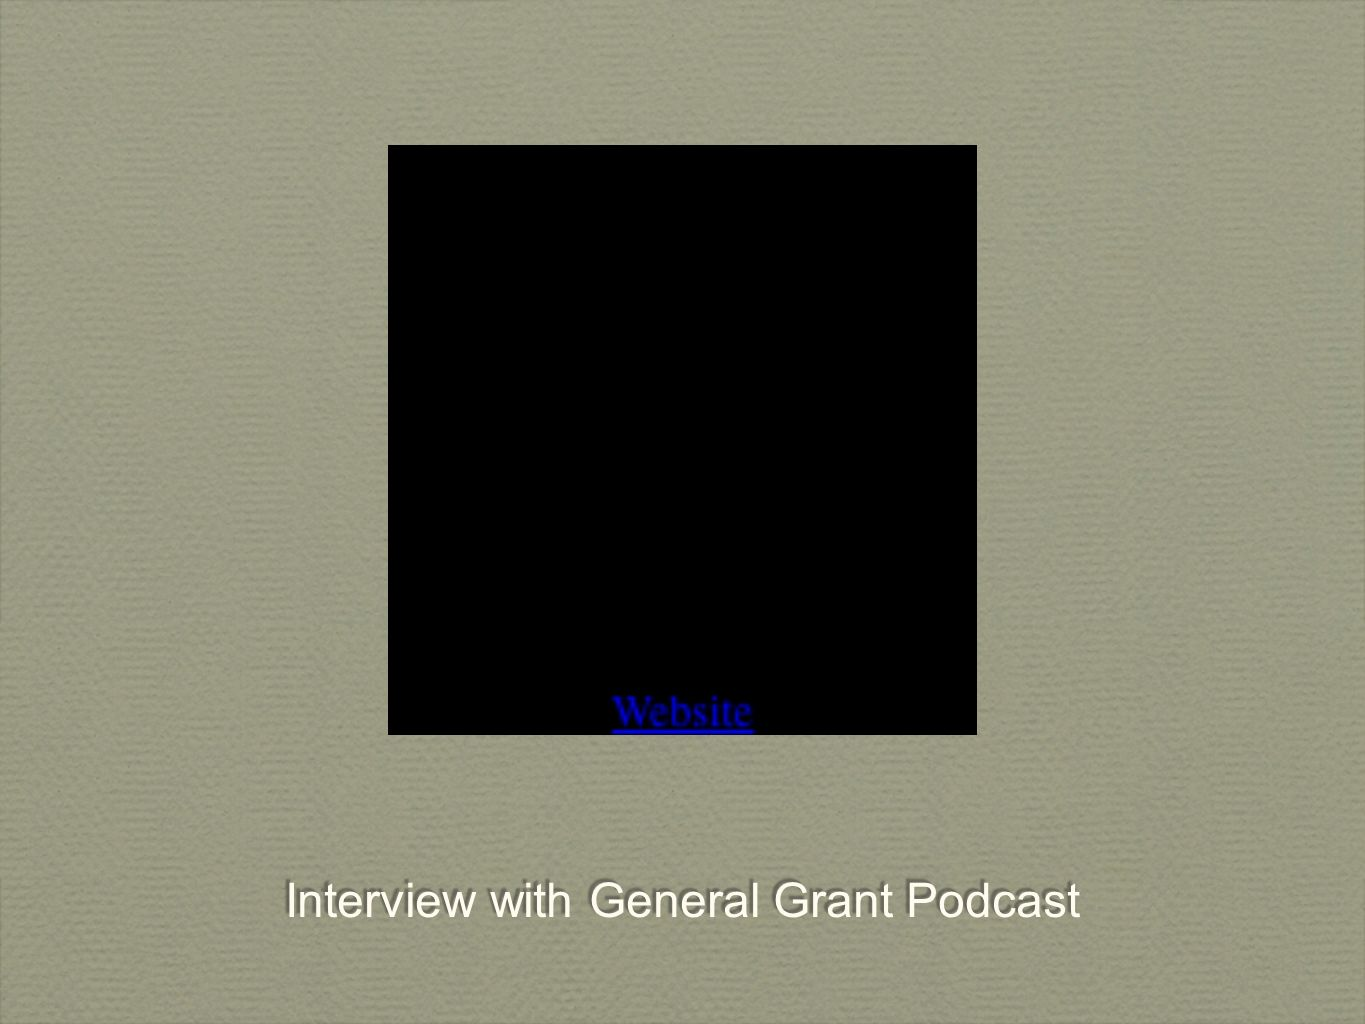 Interview with General Grant Podcast